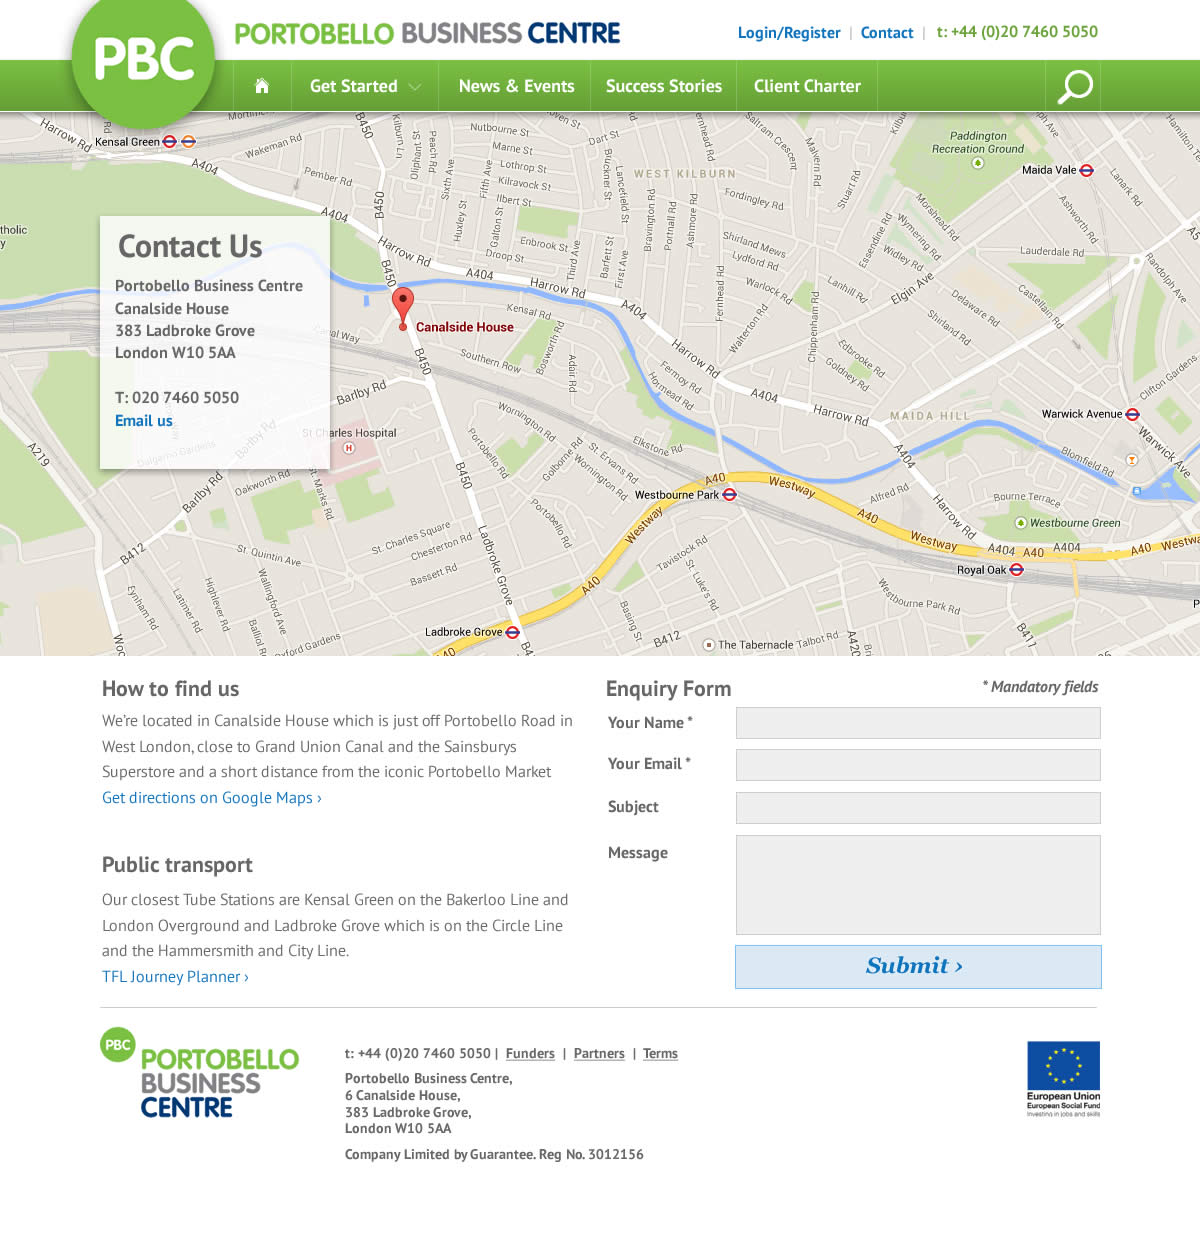 Web design for The Portobello Bisiness Centre contact page